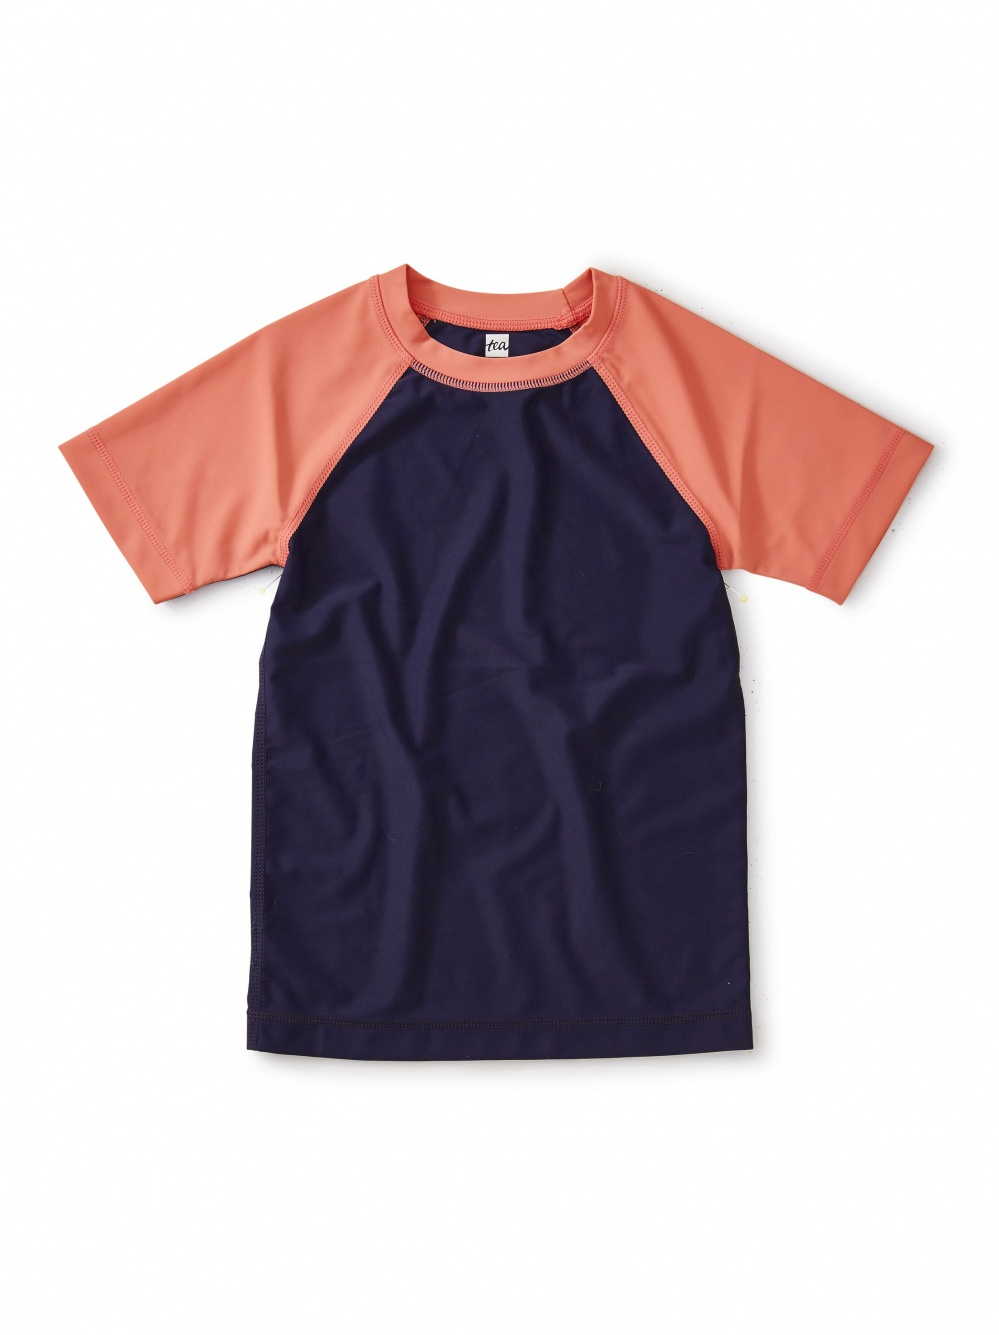 Colorblocked Short Sleeve Rash Guard